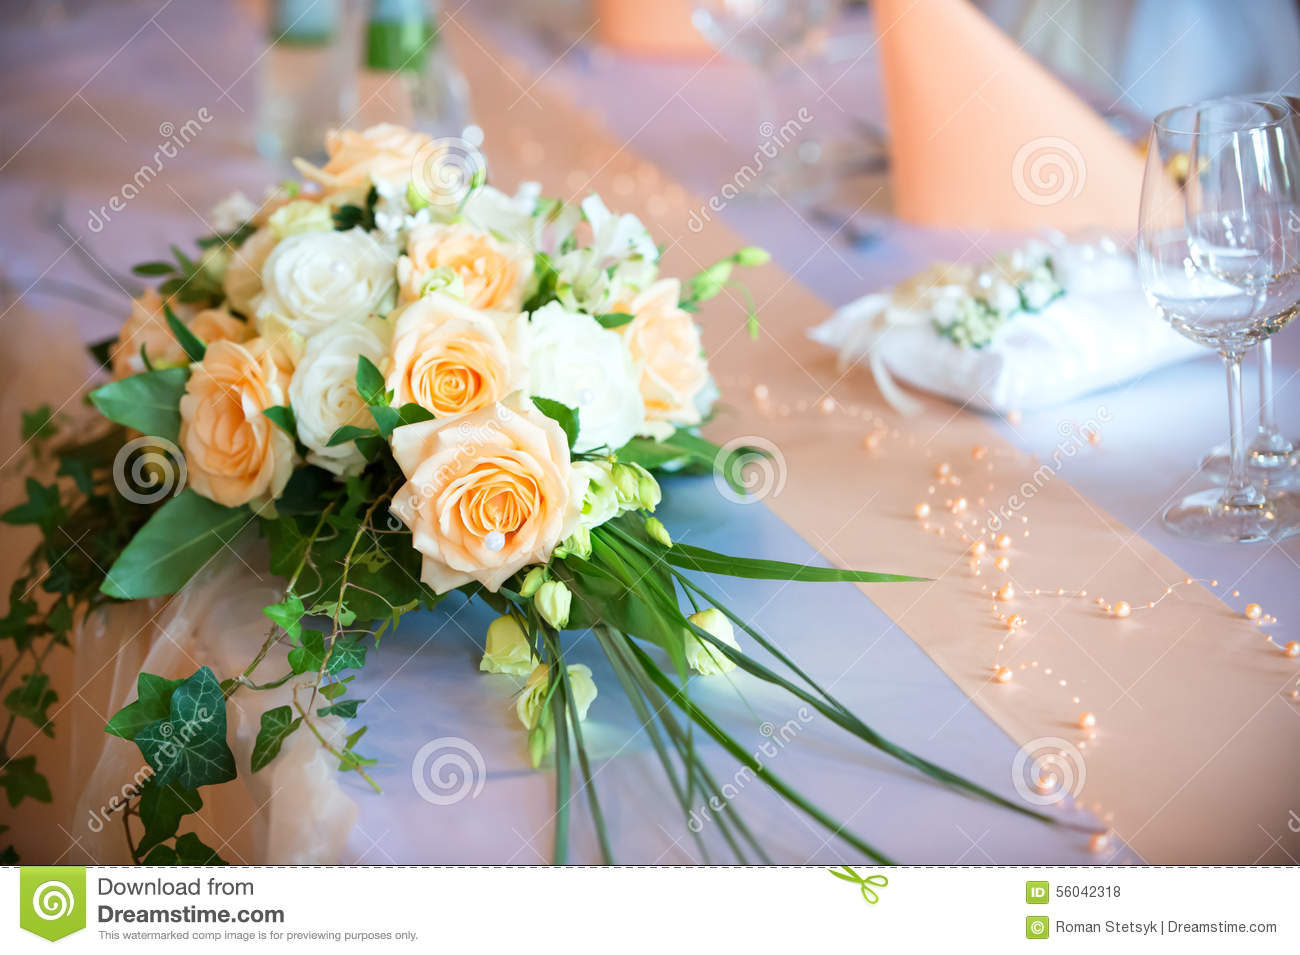 bouquet de fleur sur la table de salle manger de mariage photo stock image 56042318. Black Bedroom Furniture Sets. Home Design Ideas